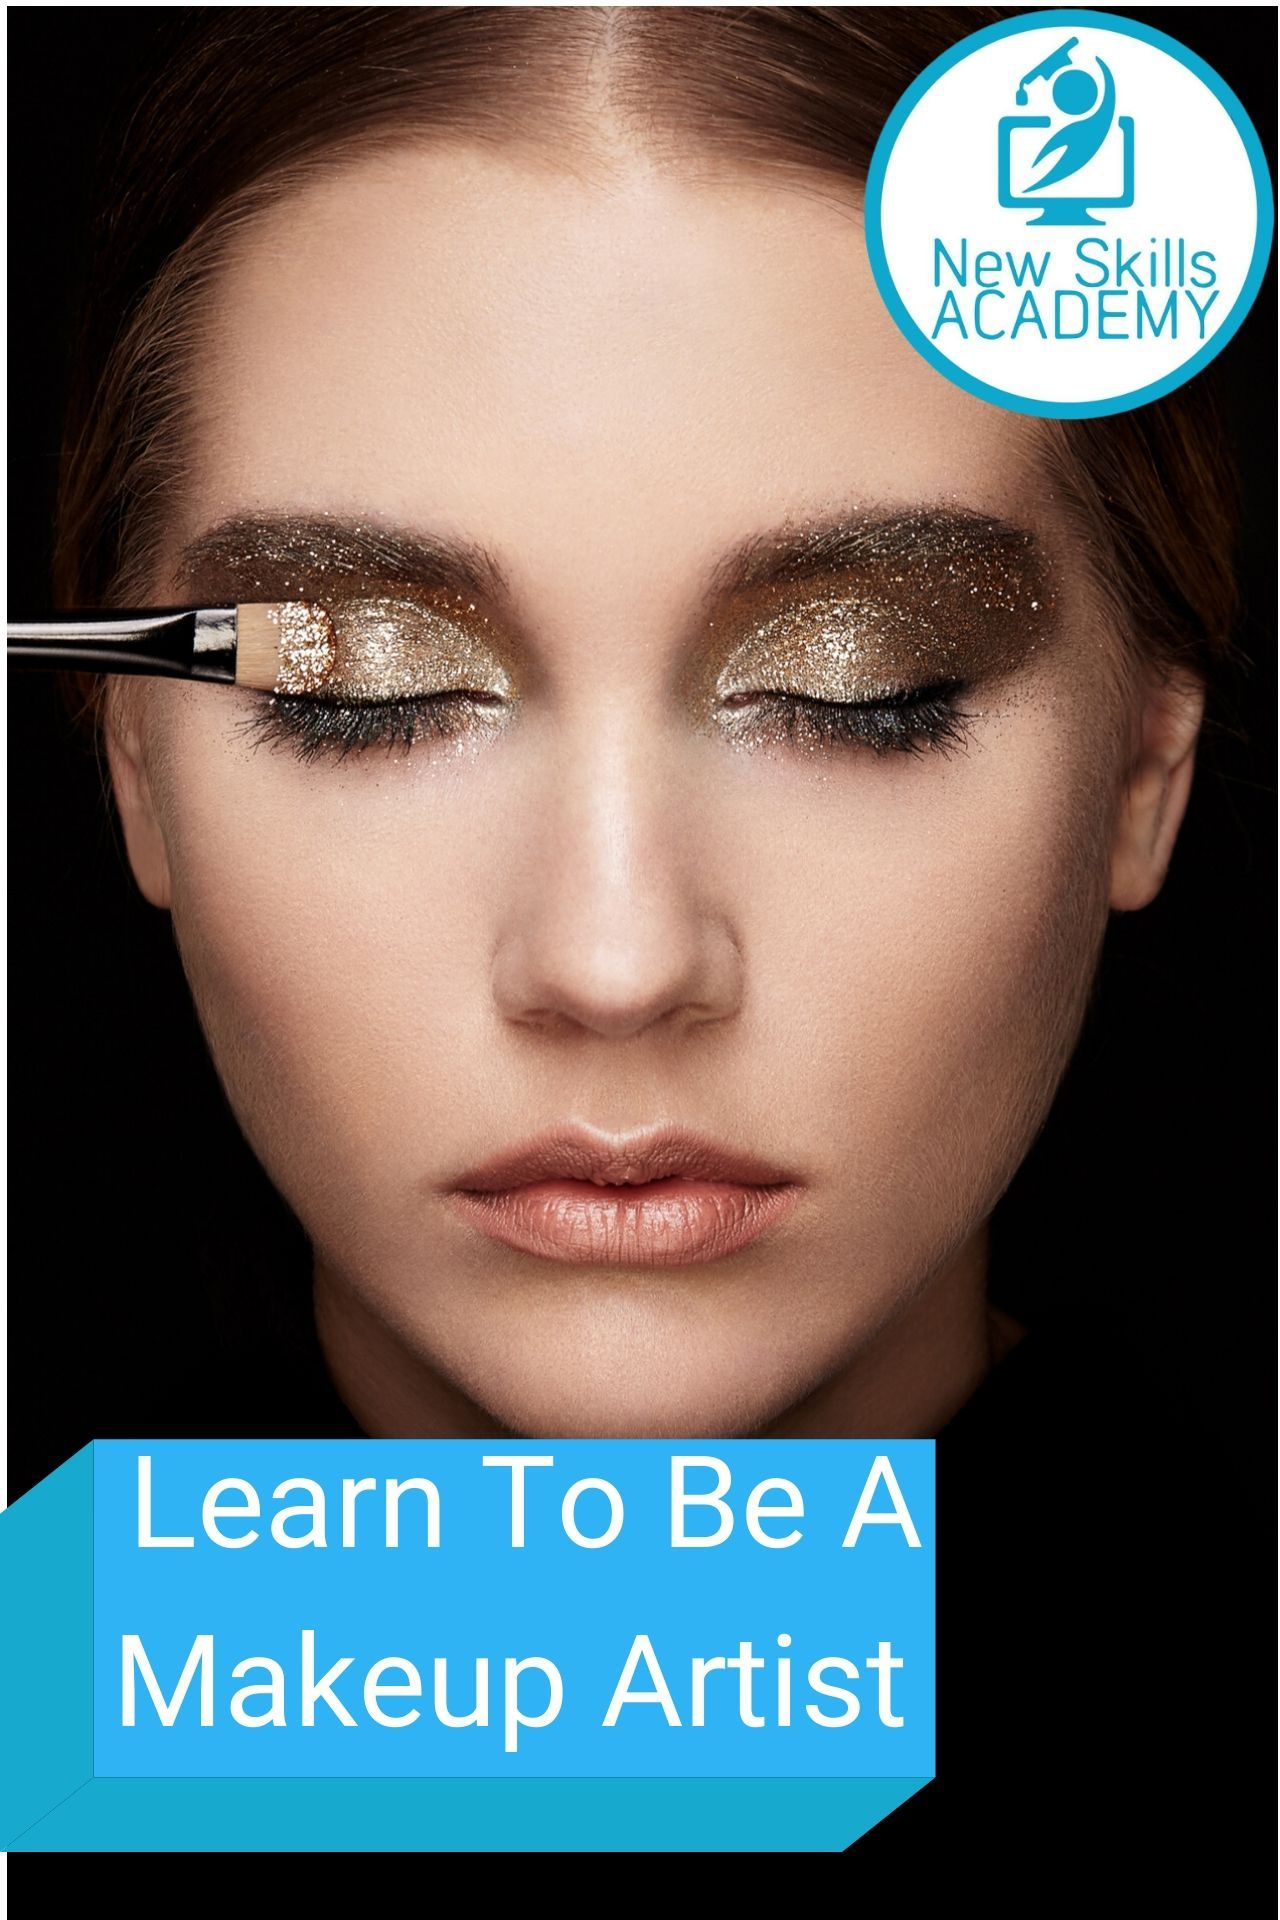 Makeup Artist Certification Only 26 USD in 2020